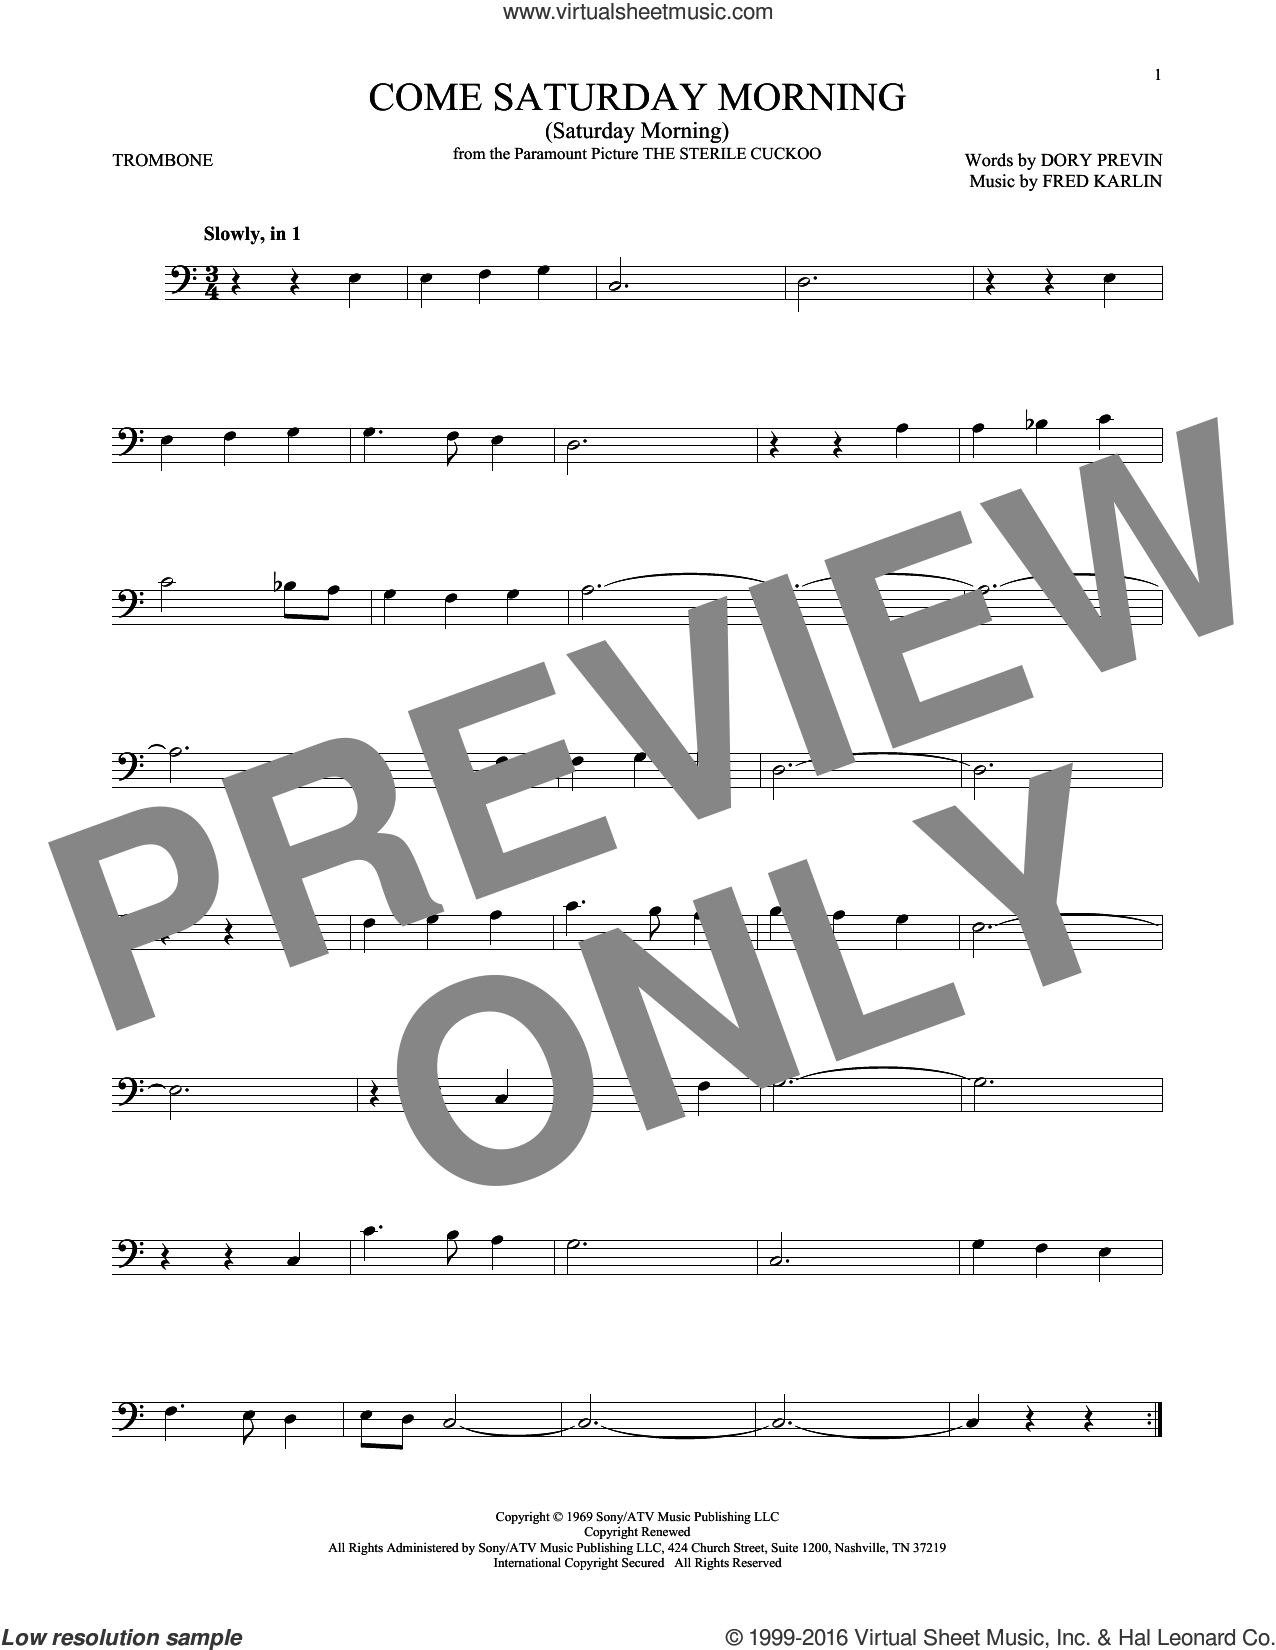 Come Saturday Morning (Saturday Morning) sheet music for trombone solo by Dory Previn and Fred Karlin, intermediate skill level